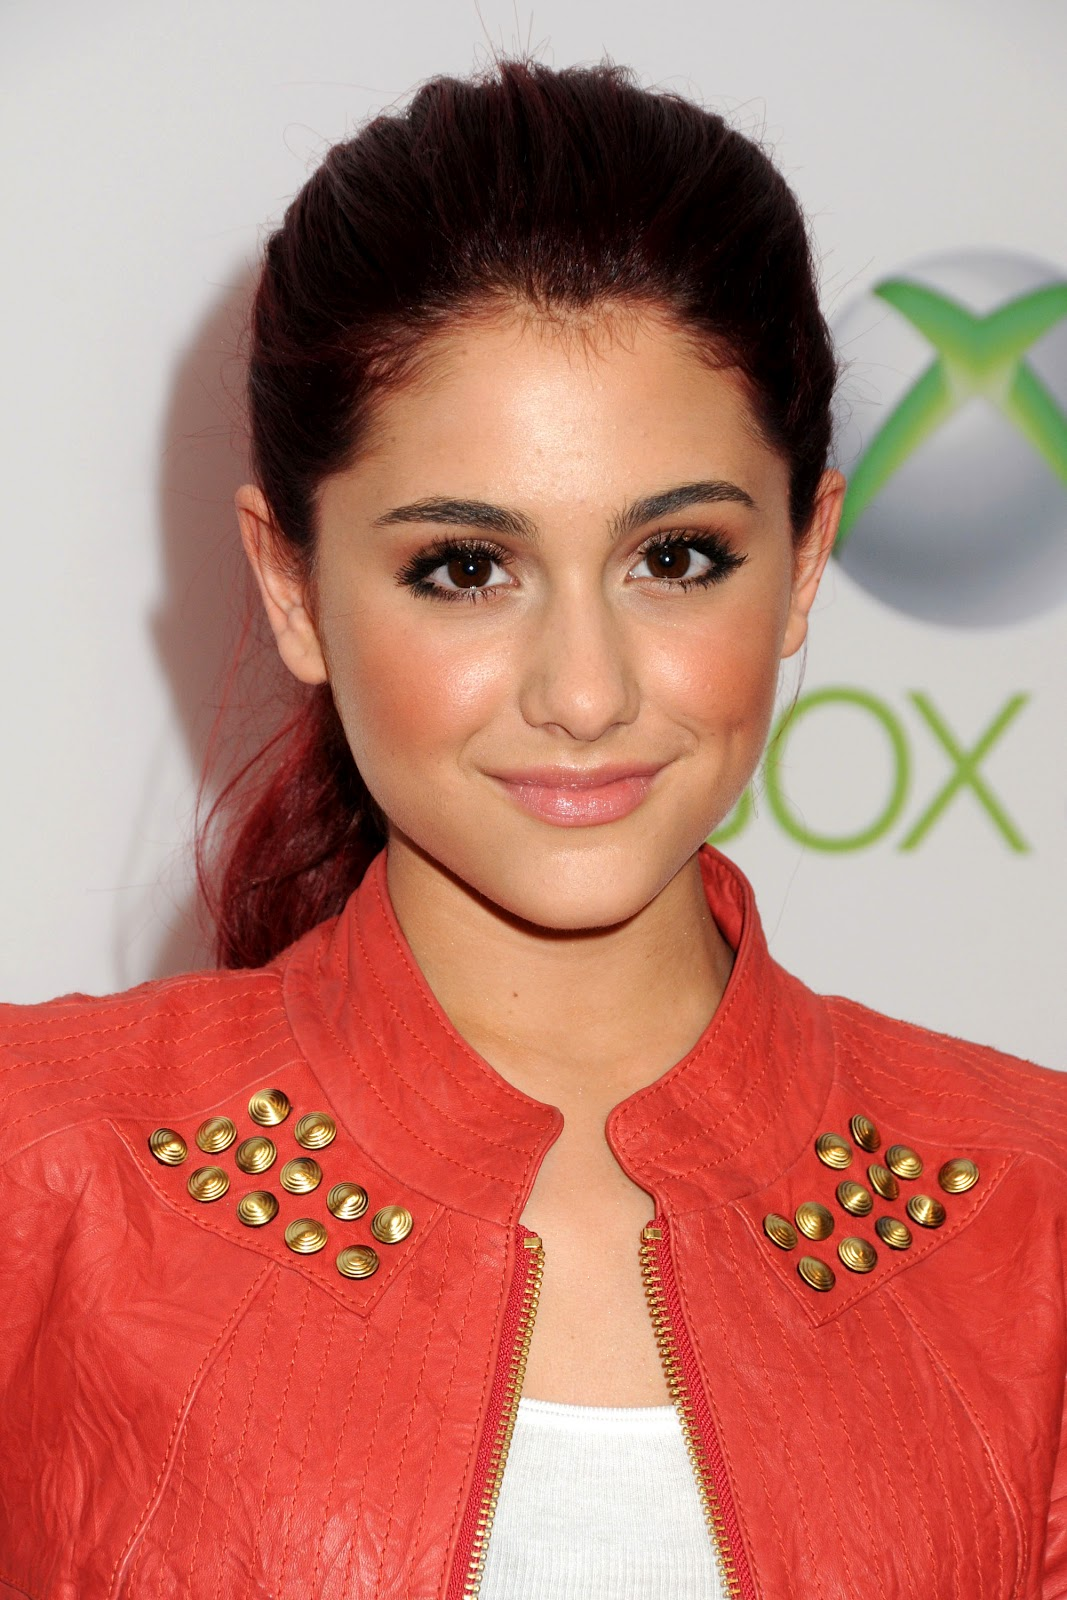 Ariana Grande S Mac Viva Glam Collection Is For The Good: Ariana Grande Doing Dating With Josh Hutcherson